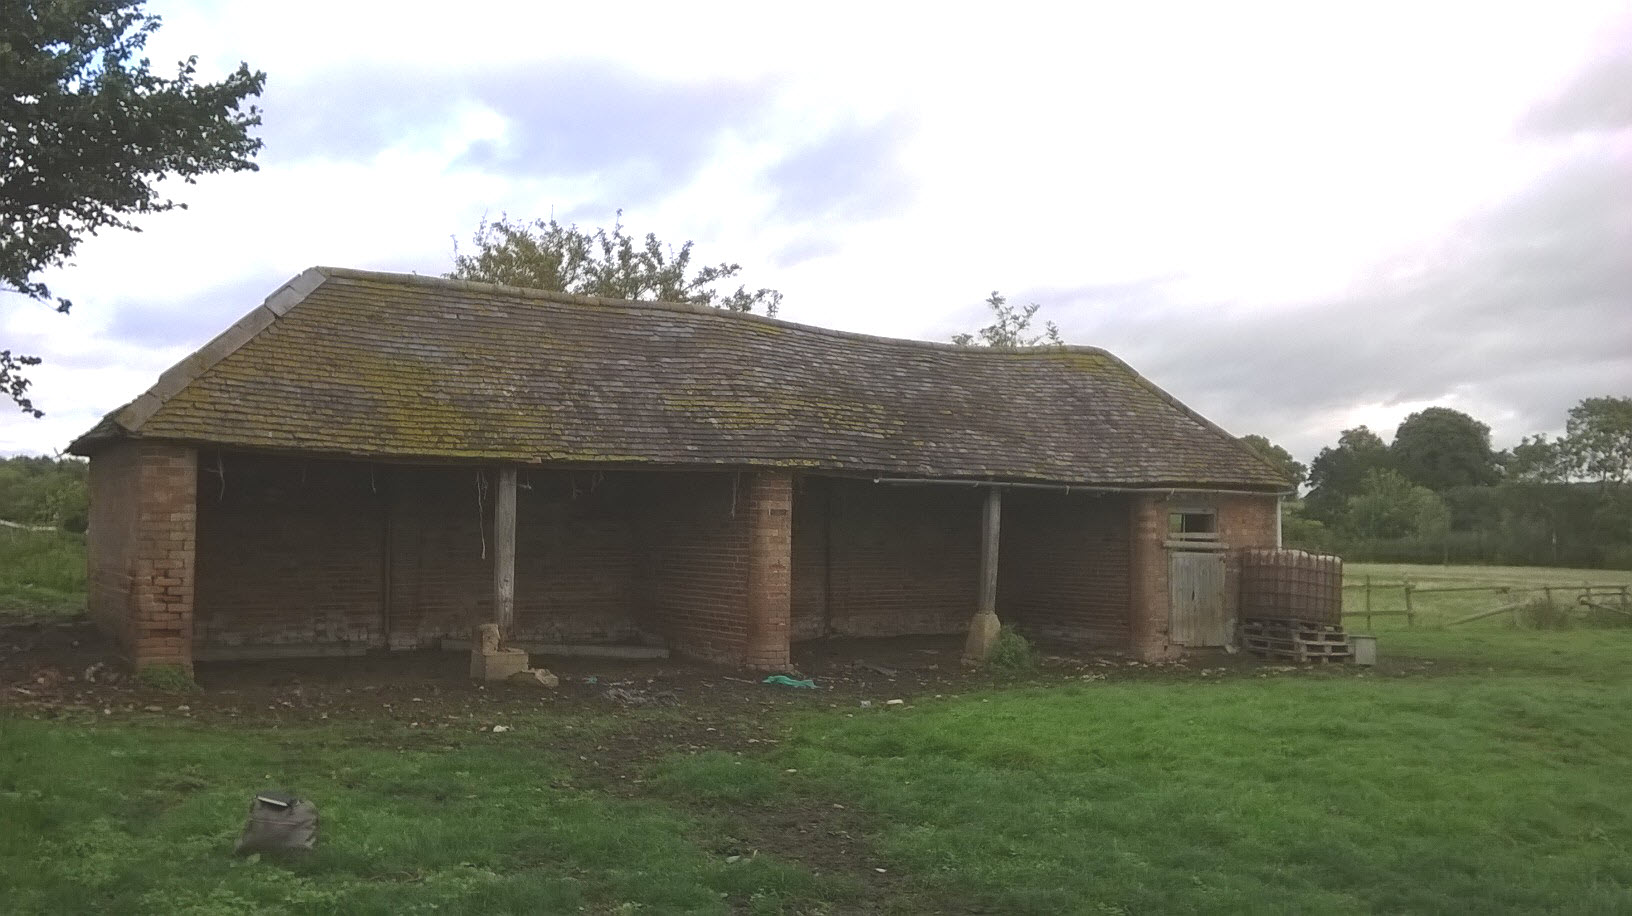 Barn Conversion - original farm building